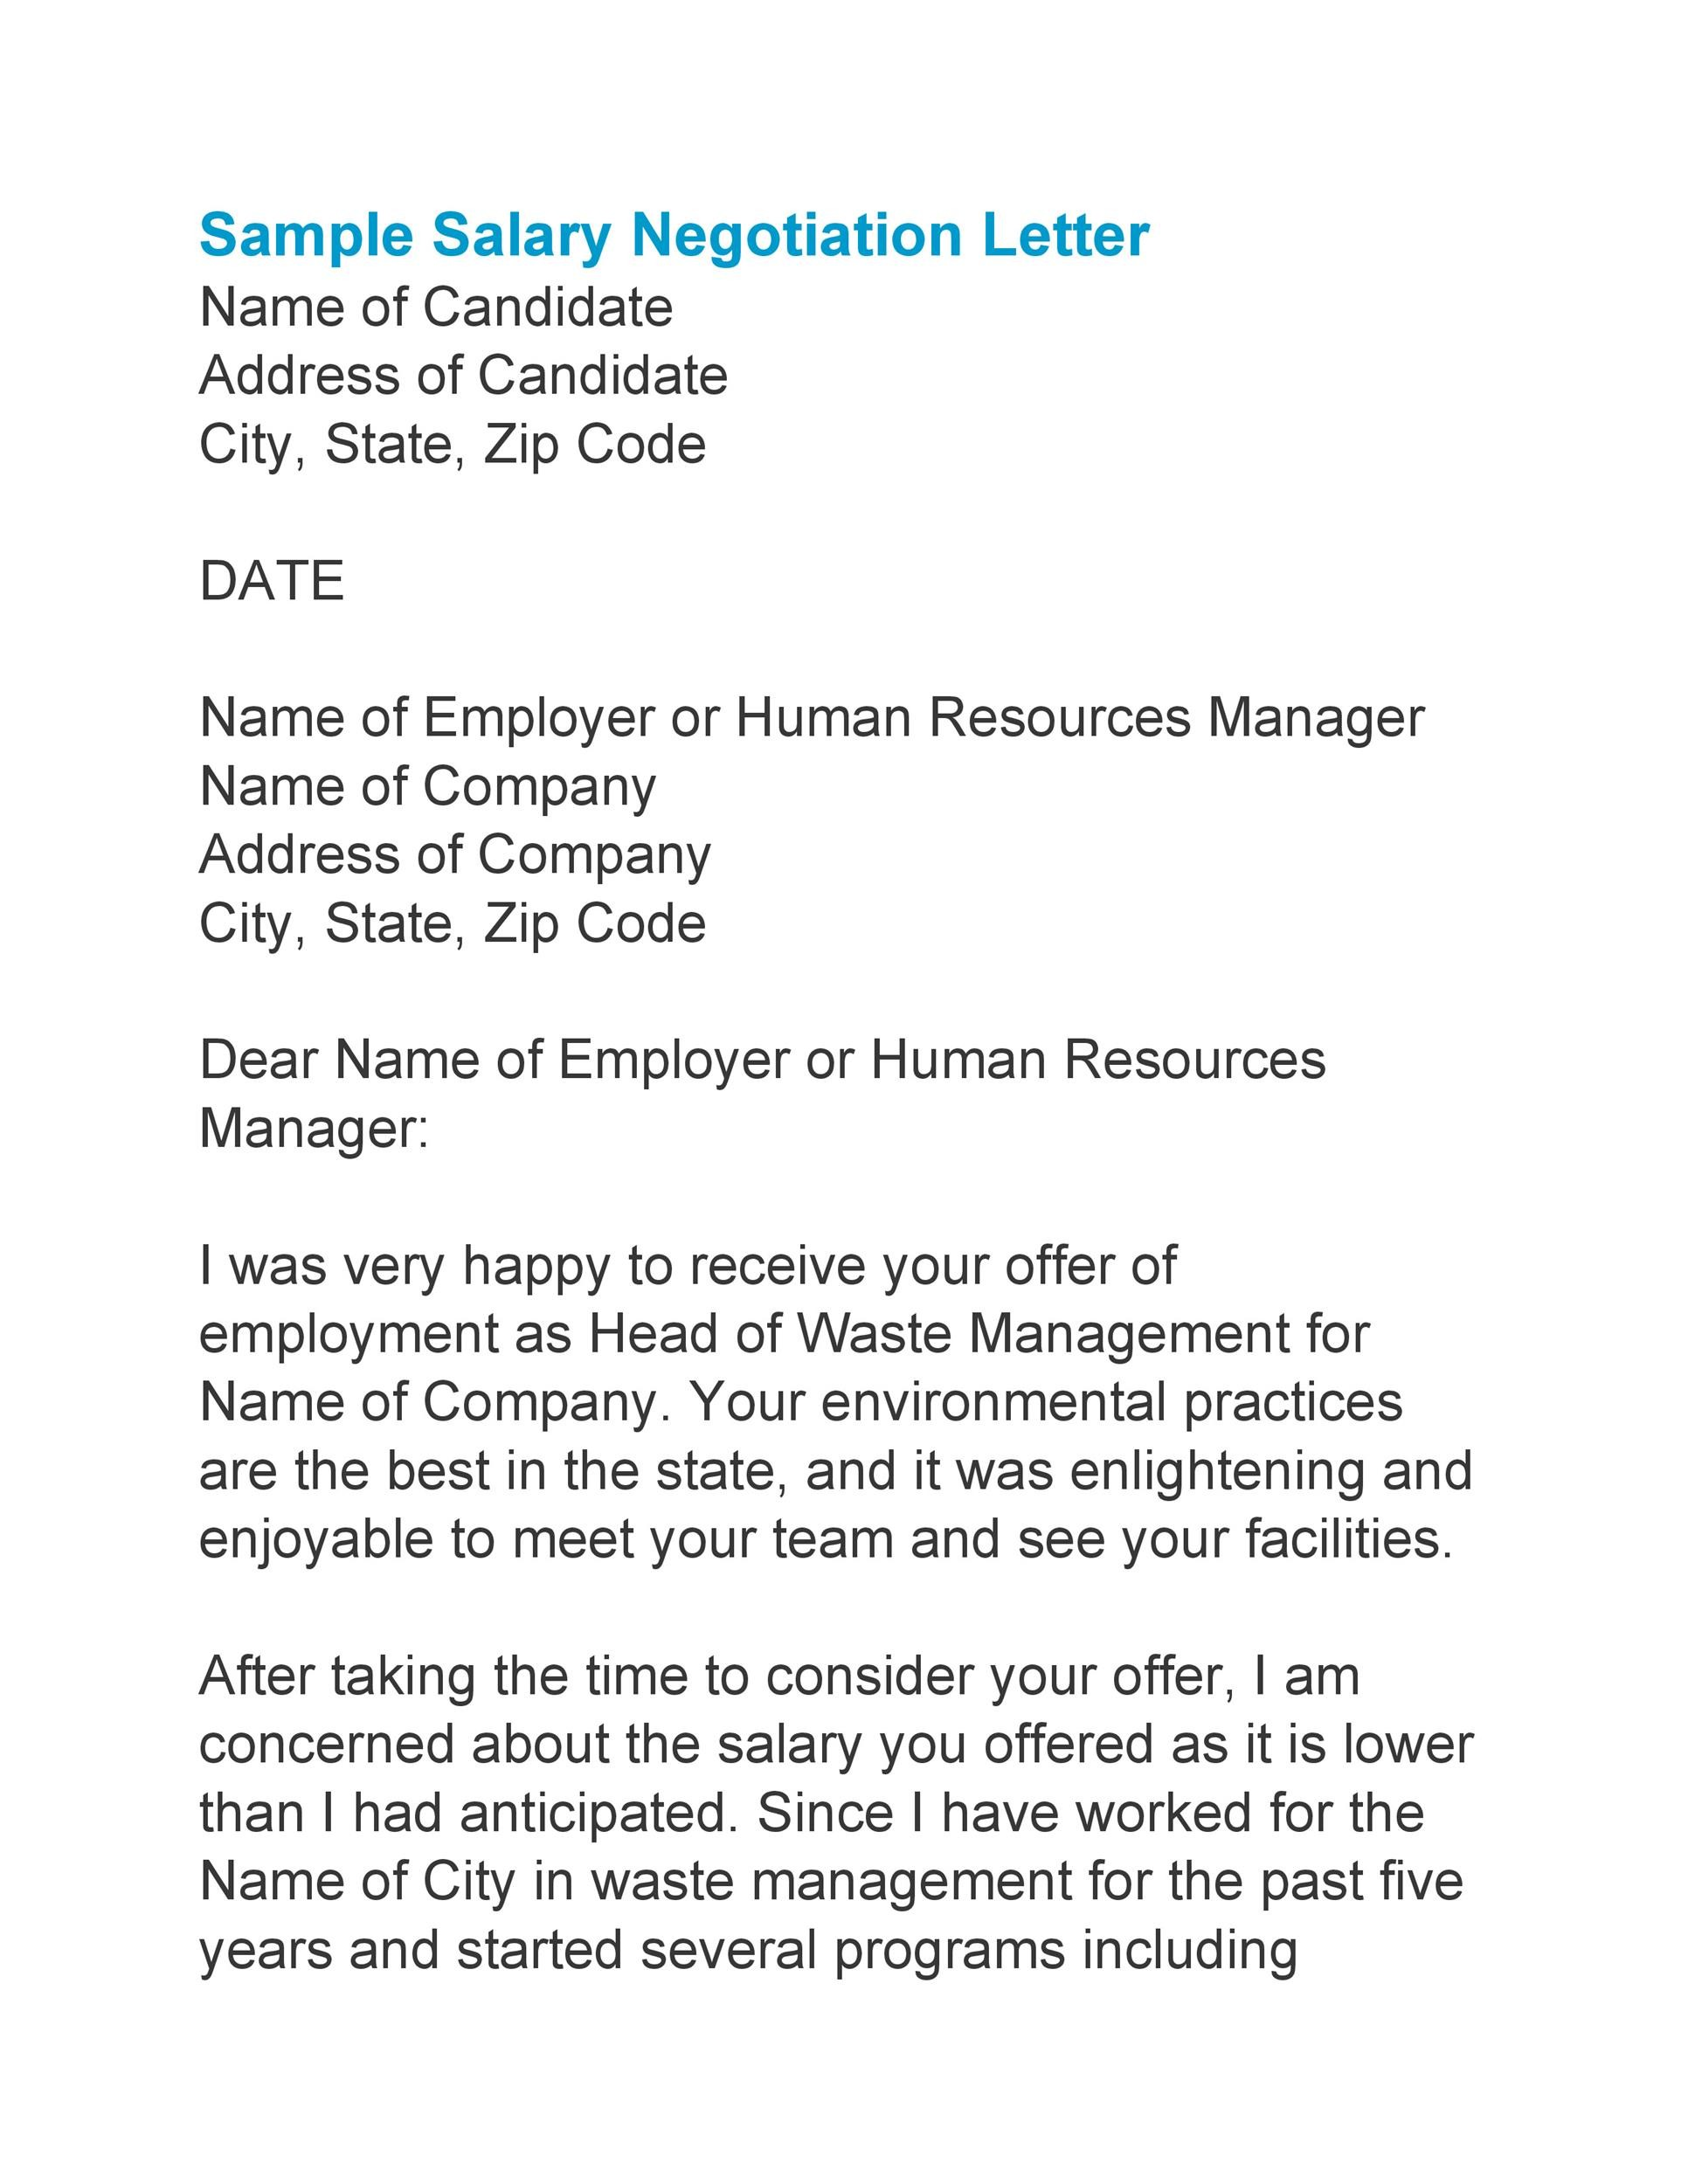 Free salary negotiation letter 32